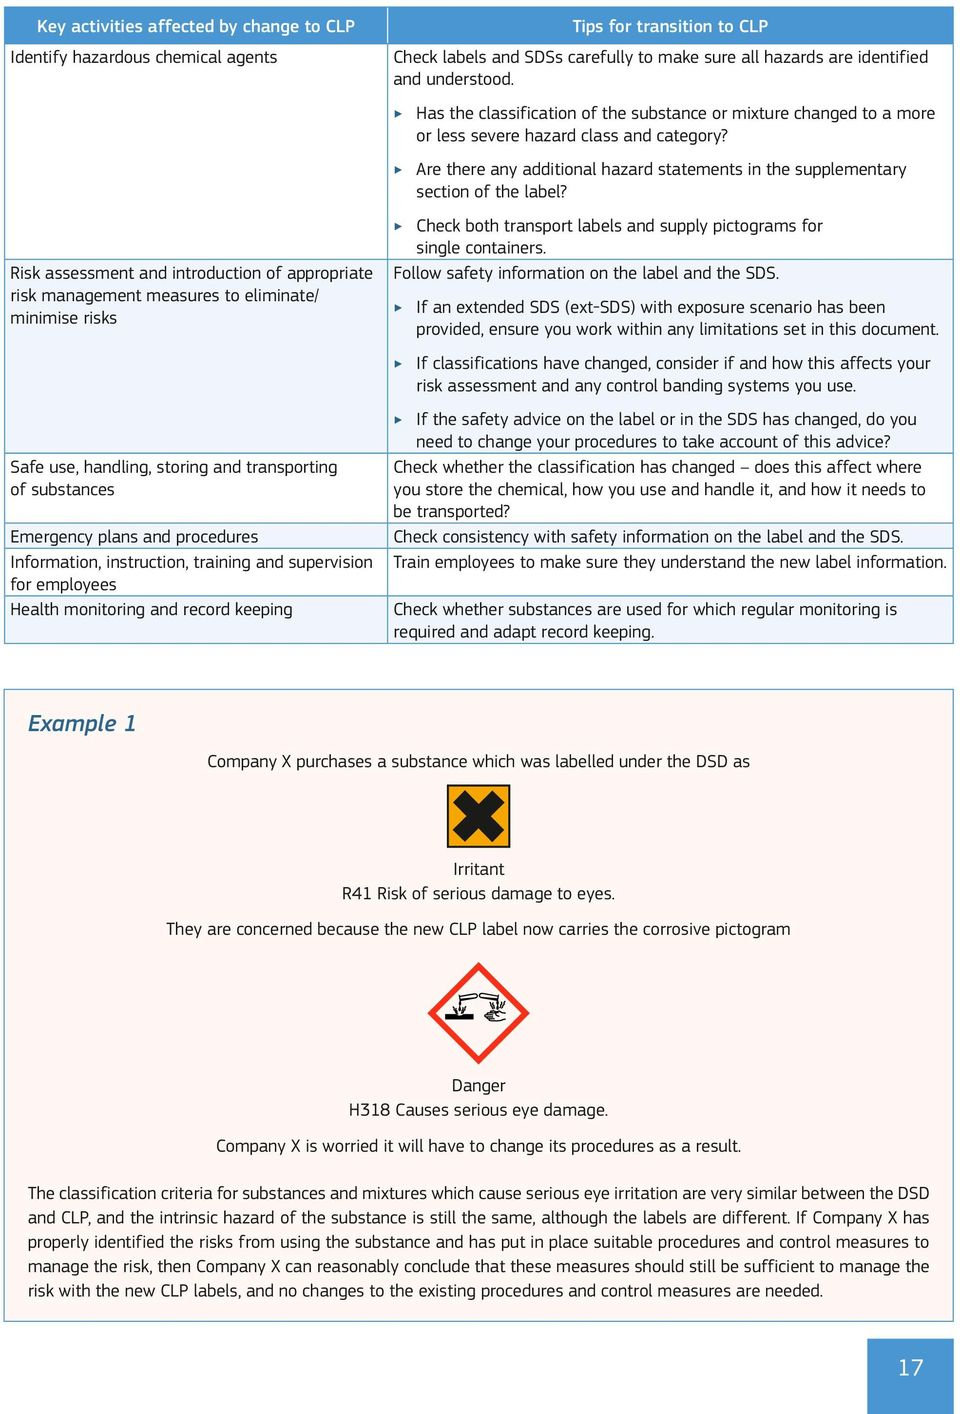 Check labels and SDSs carefully to make sure all hazards are identified and understood. Has the classification of the substance or mixture changed to a more or less severe hazard class and category?